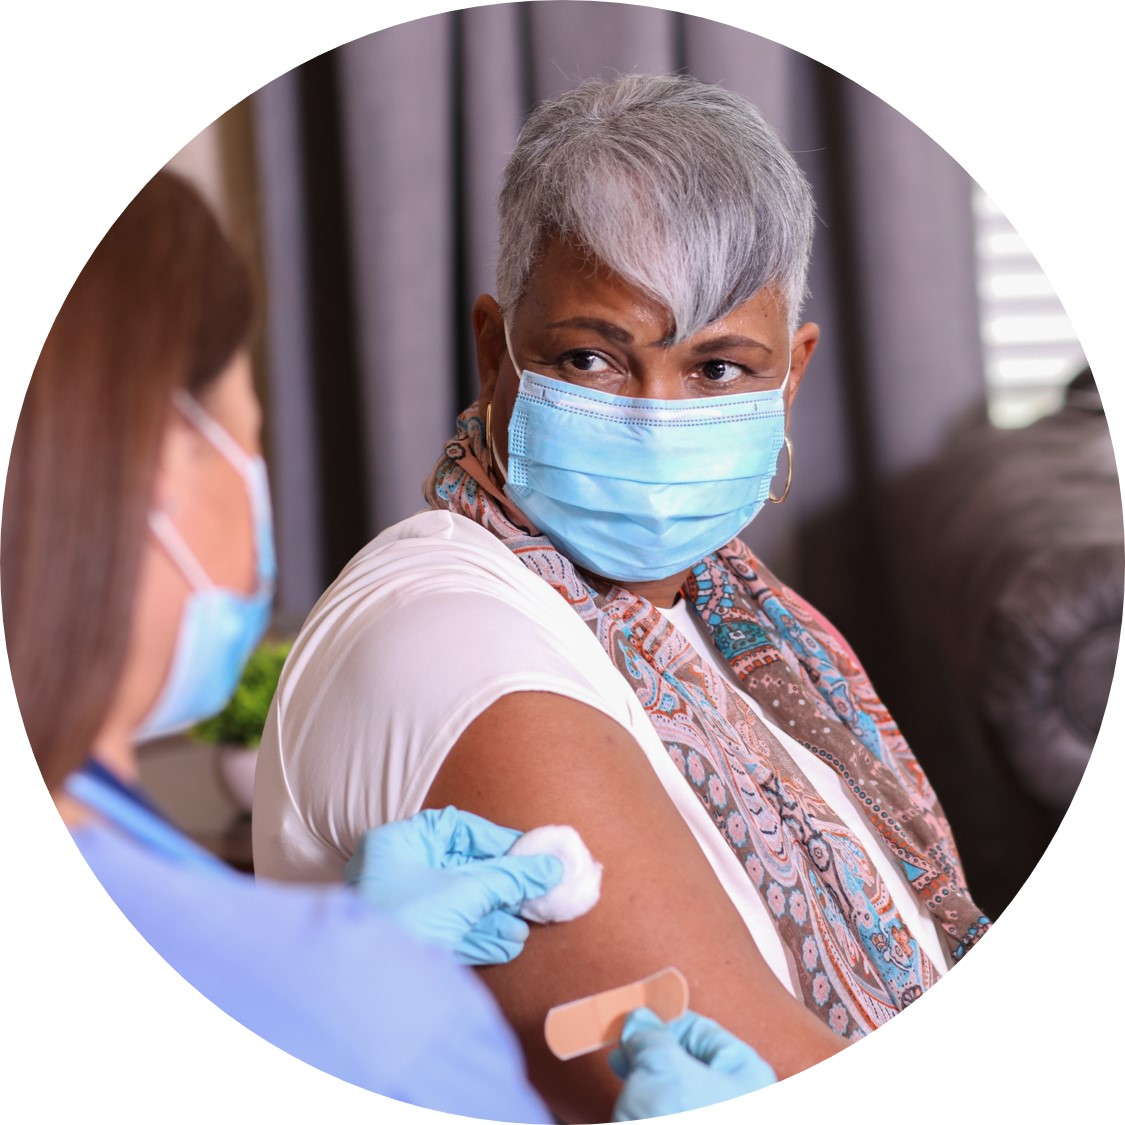 Woman with grey hair and face covering receives bandaid from nurse